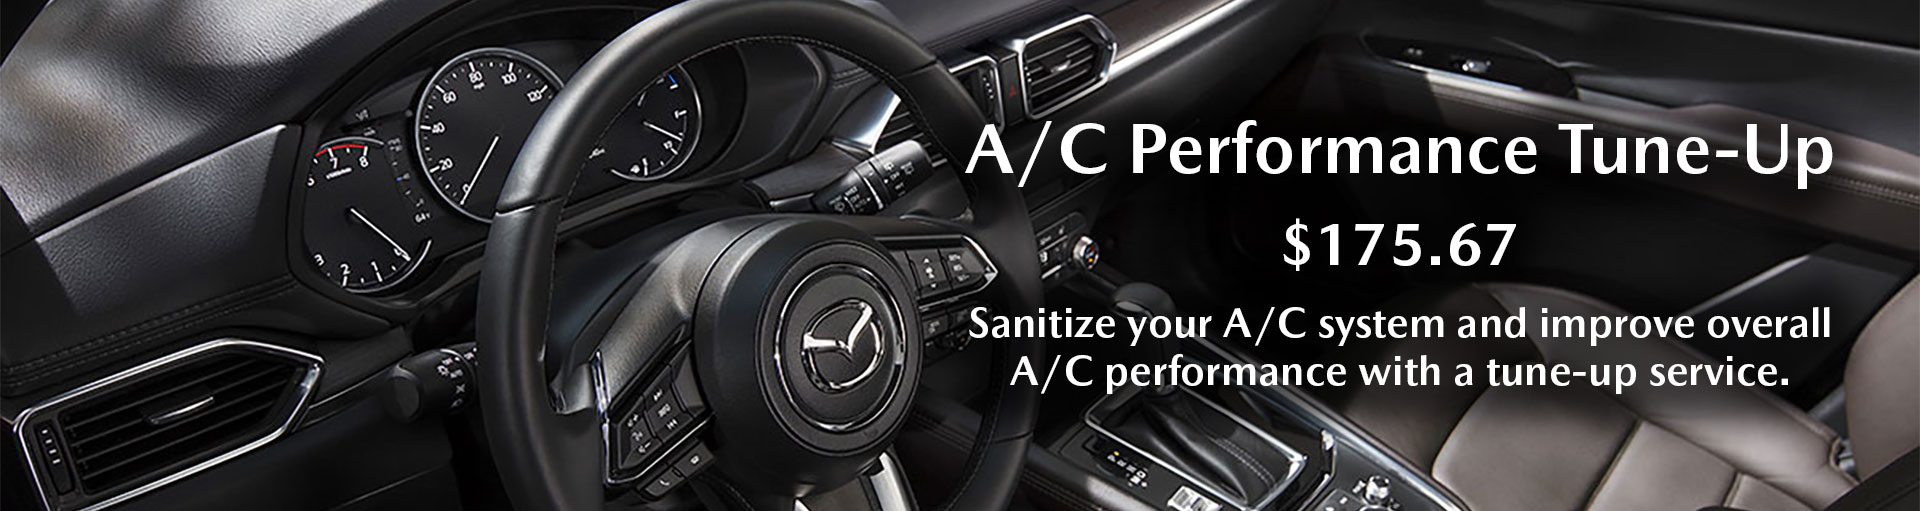 Mazda A/C Tune-Up Service Special Coupon